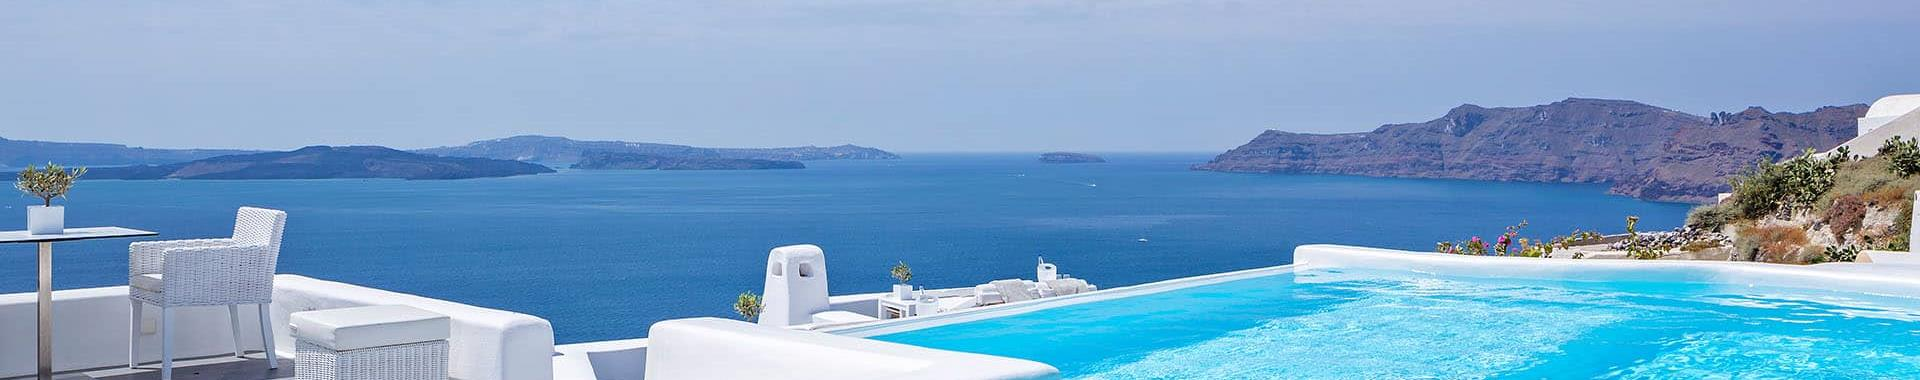 Santorini Hotels with Infinity Pool